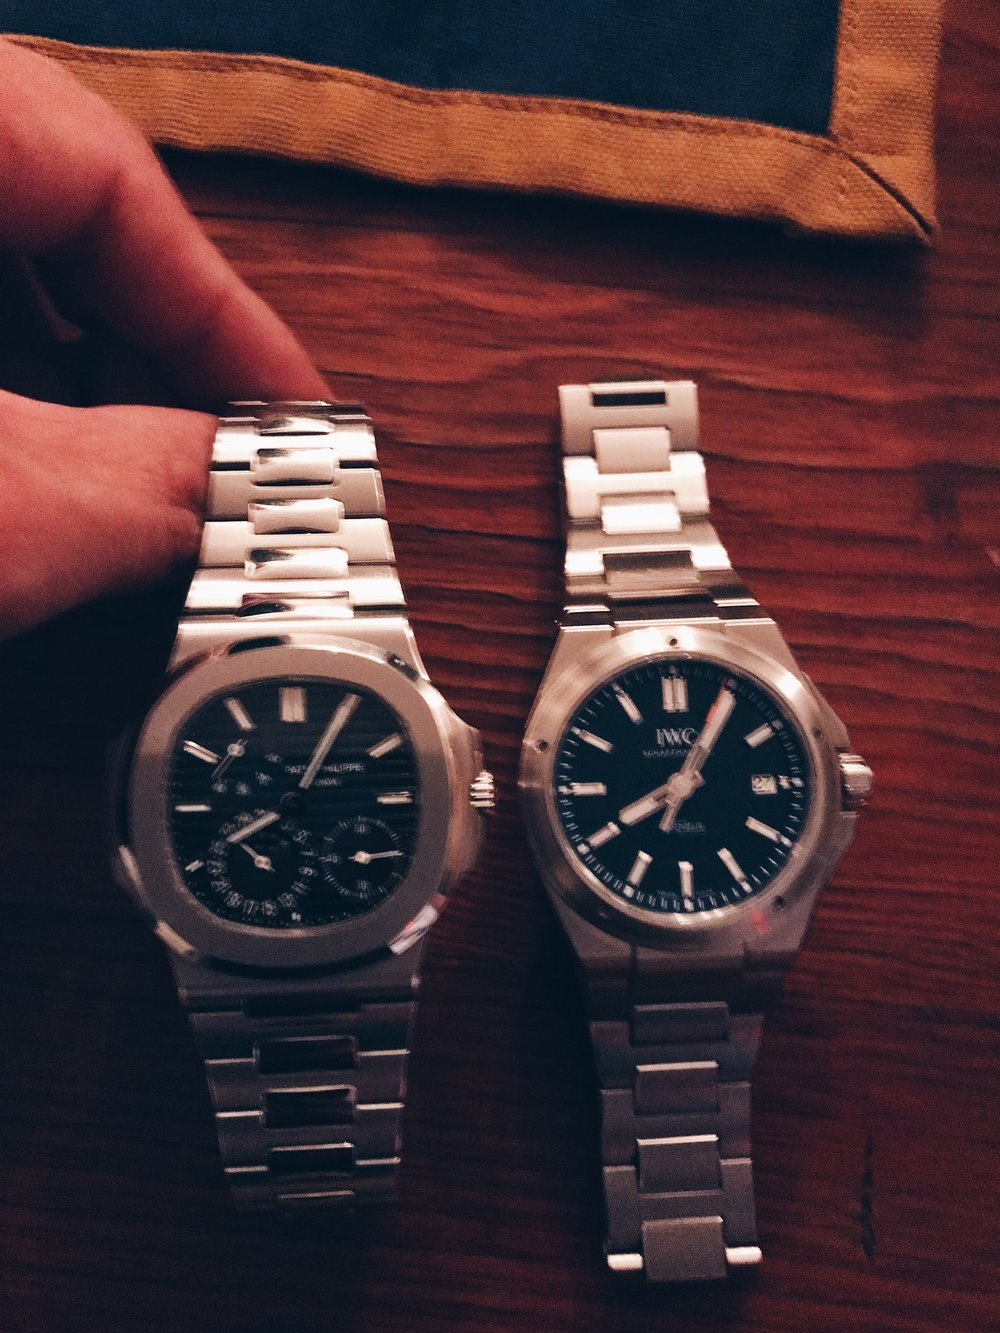 A good Genta watch (IWC Ingenieur) and a even better Genta watch (Patek Nautilus).